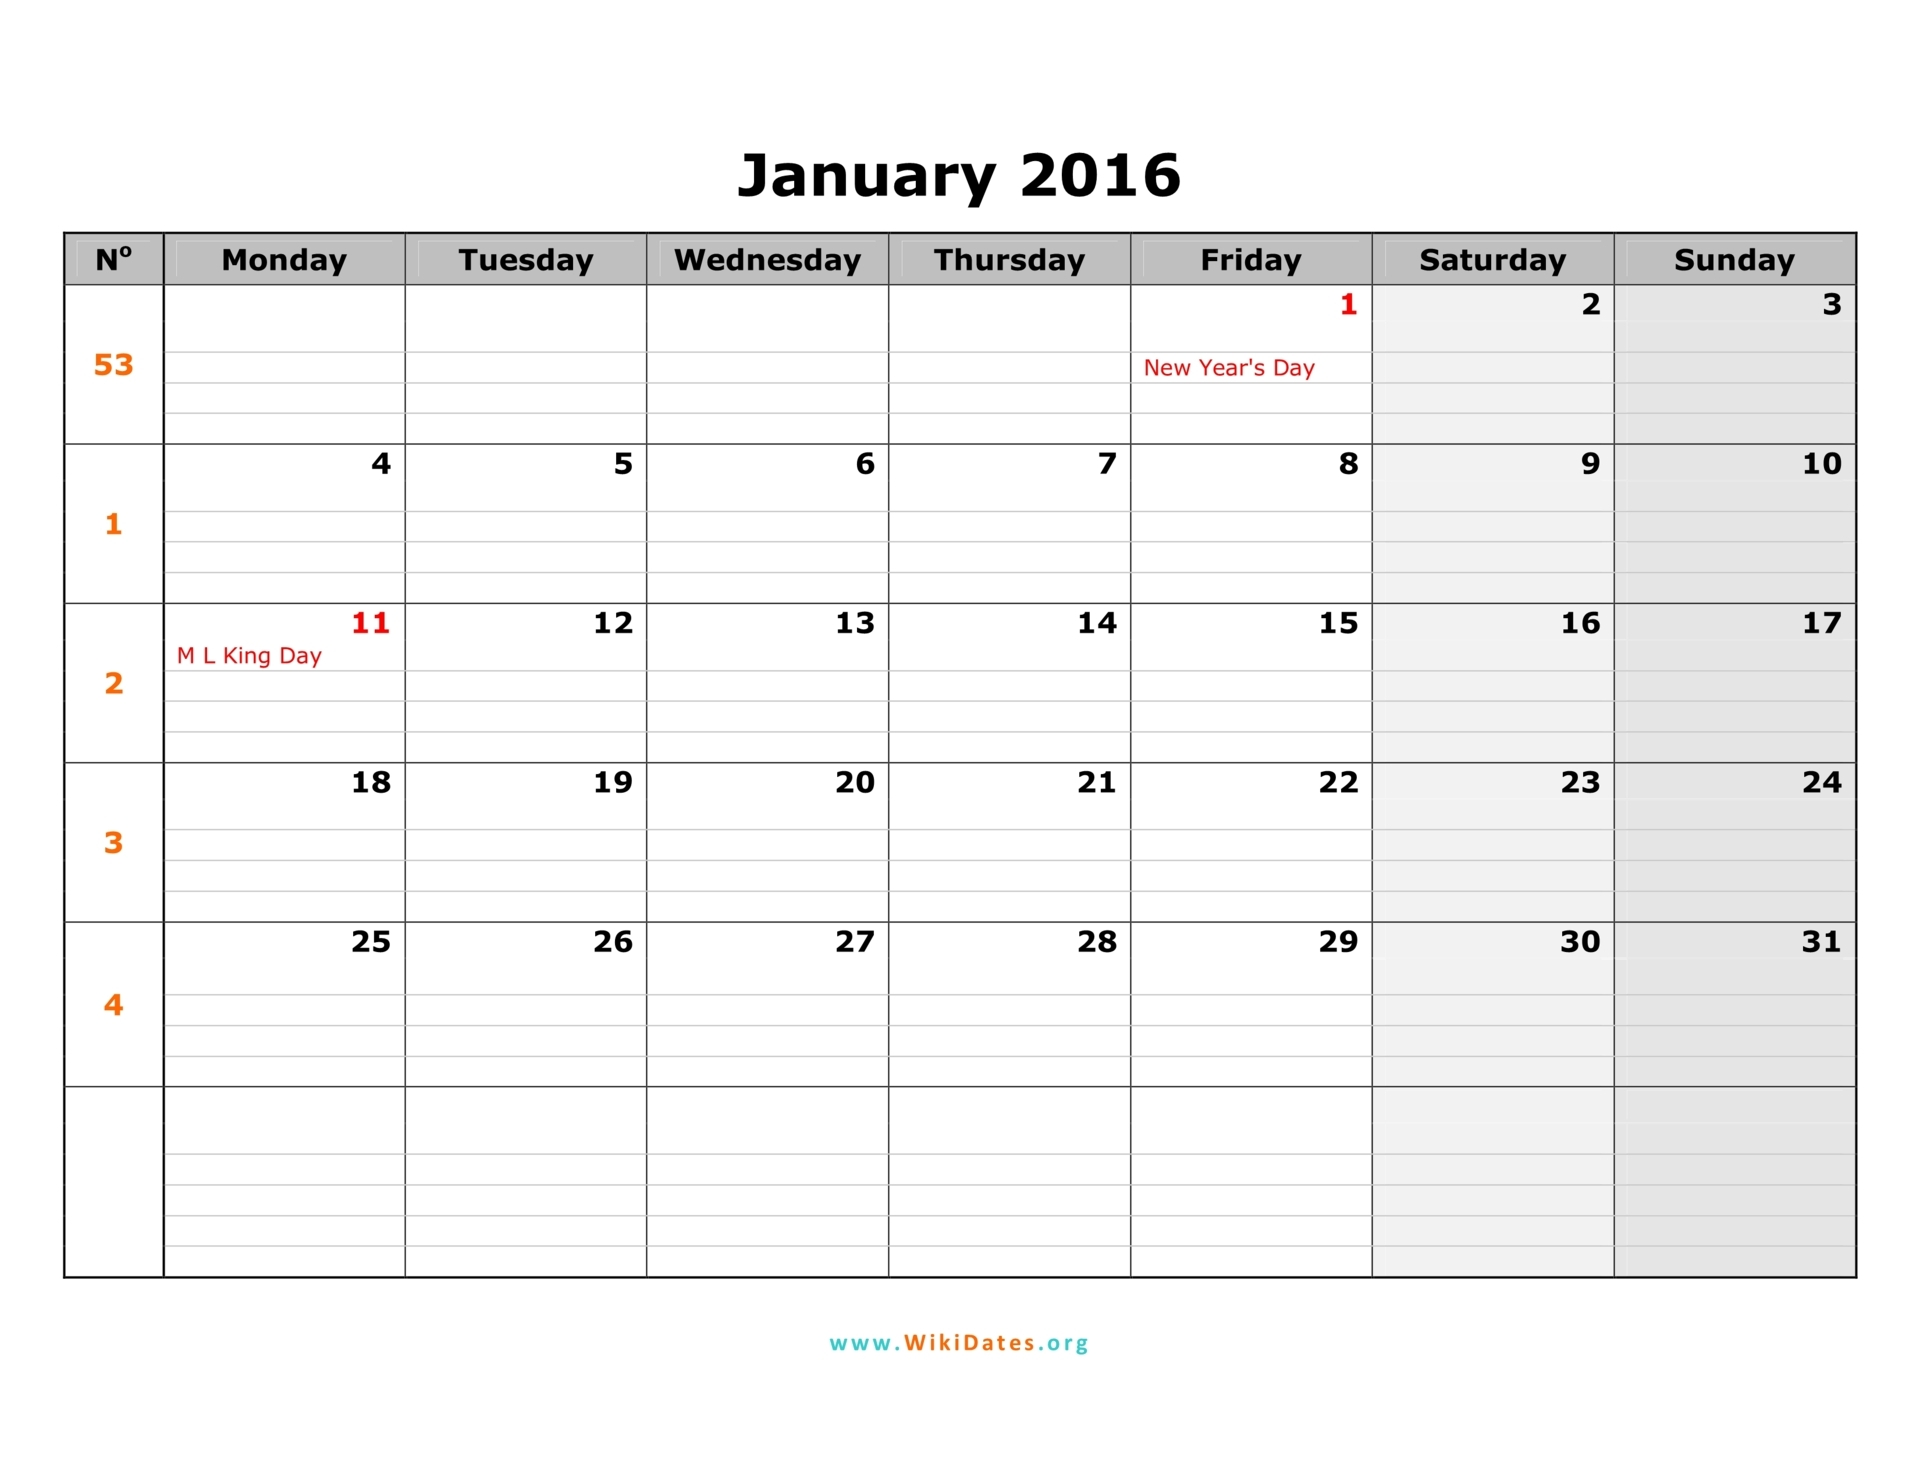 January 2016 Calendar | WikiDates.org